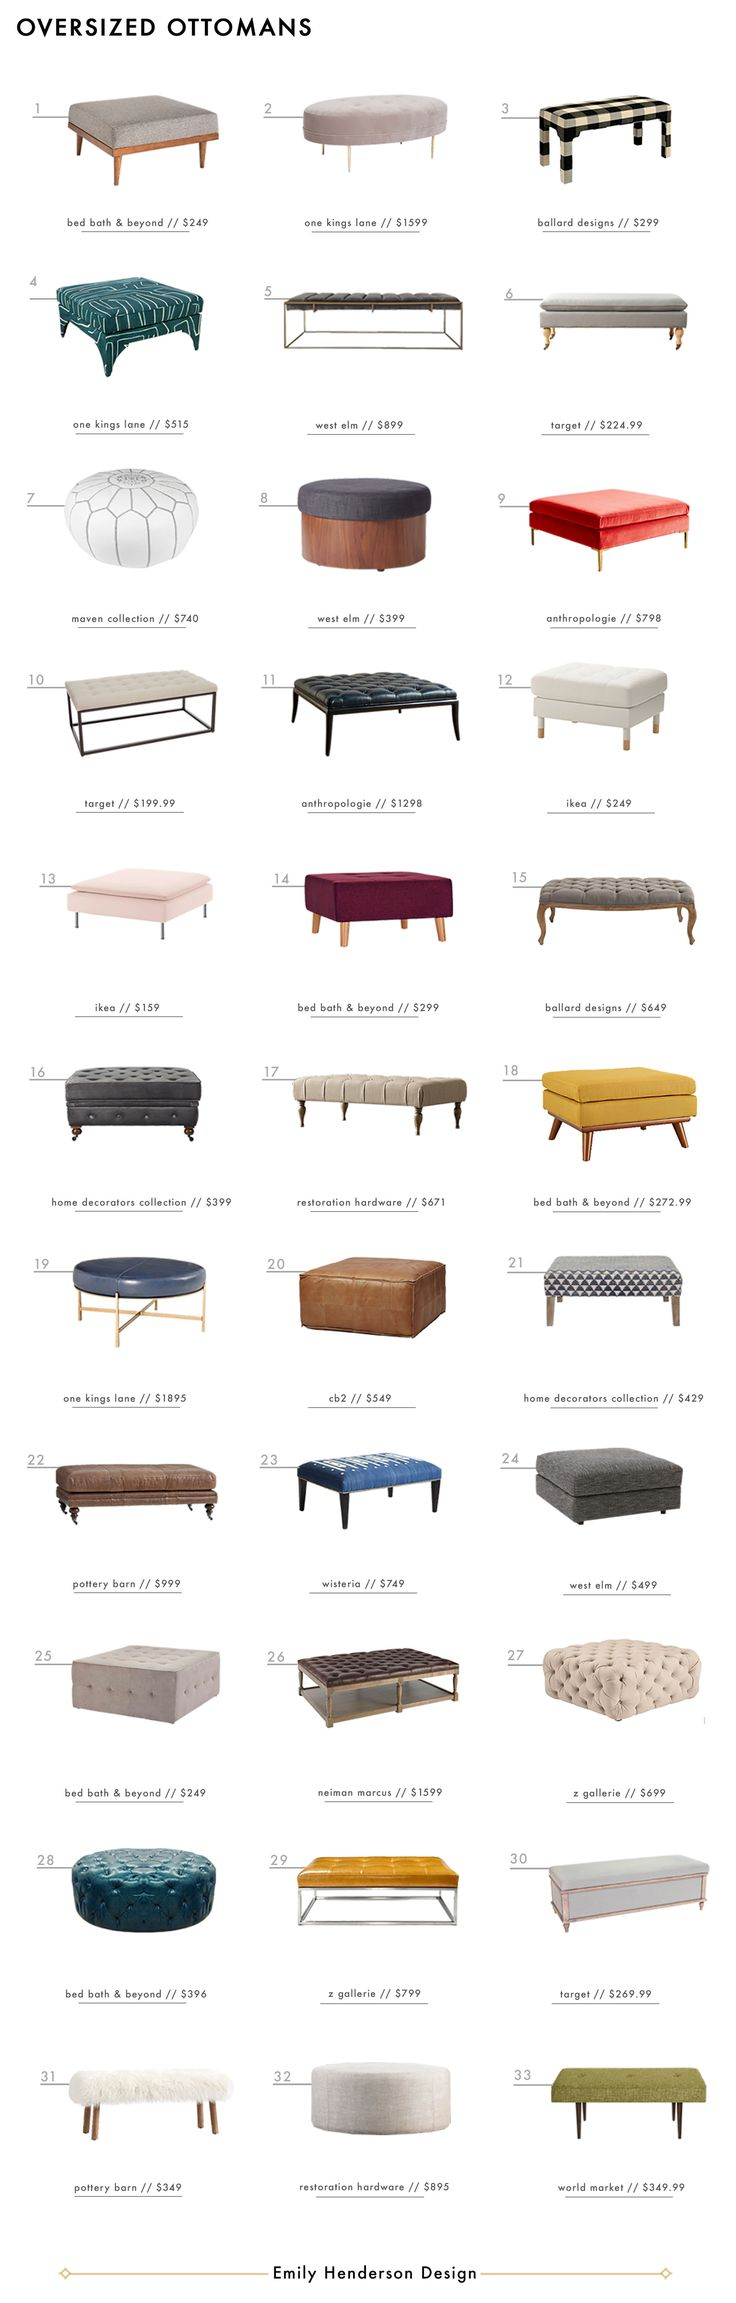 33 Ottomans That Can Do Double Duty as a Coffee Table - Emily Henderson